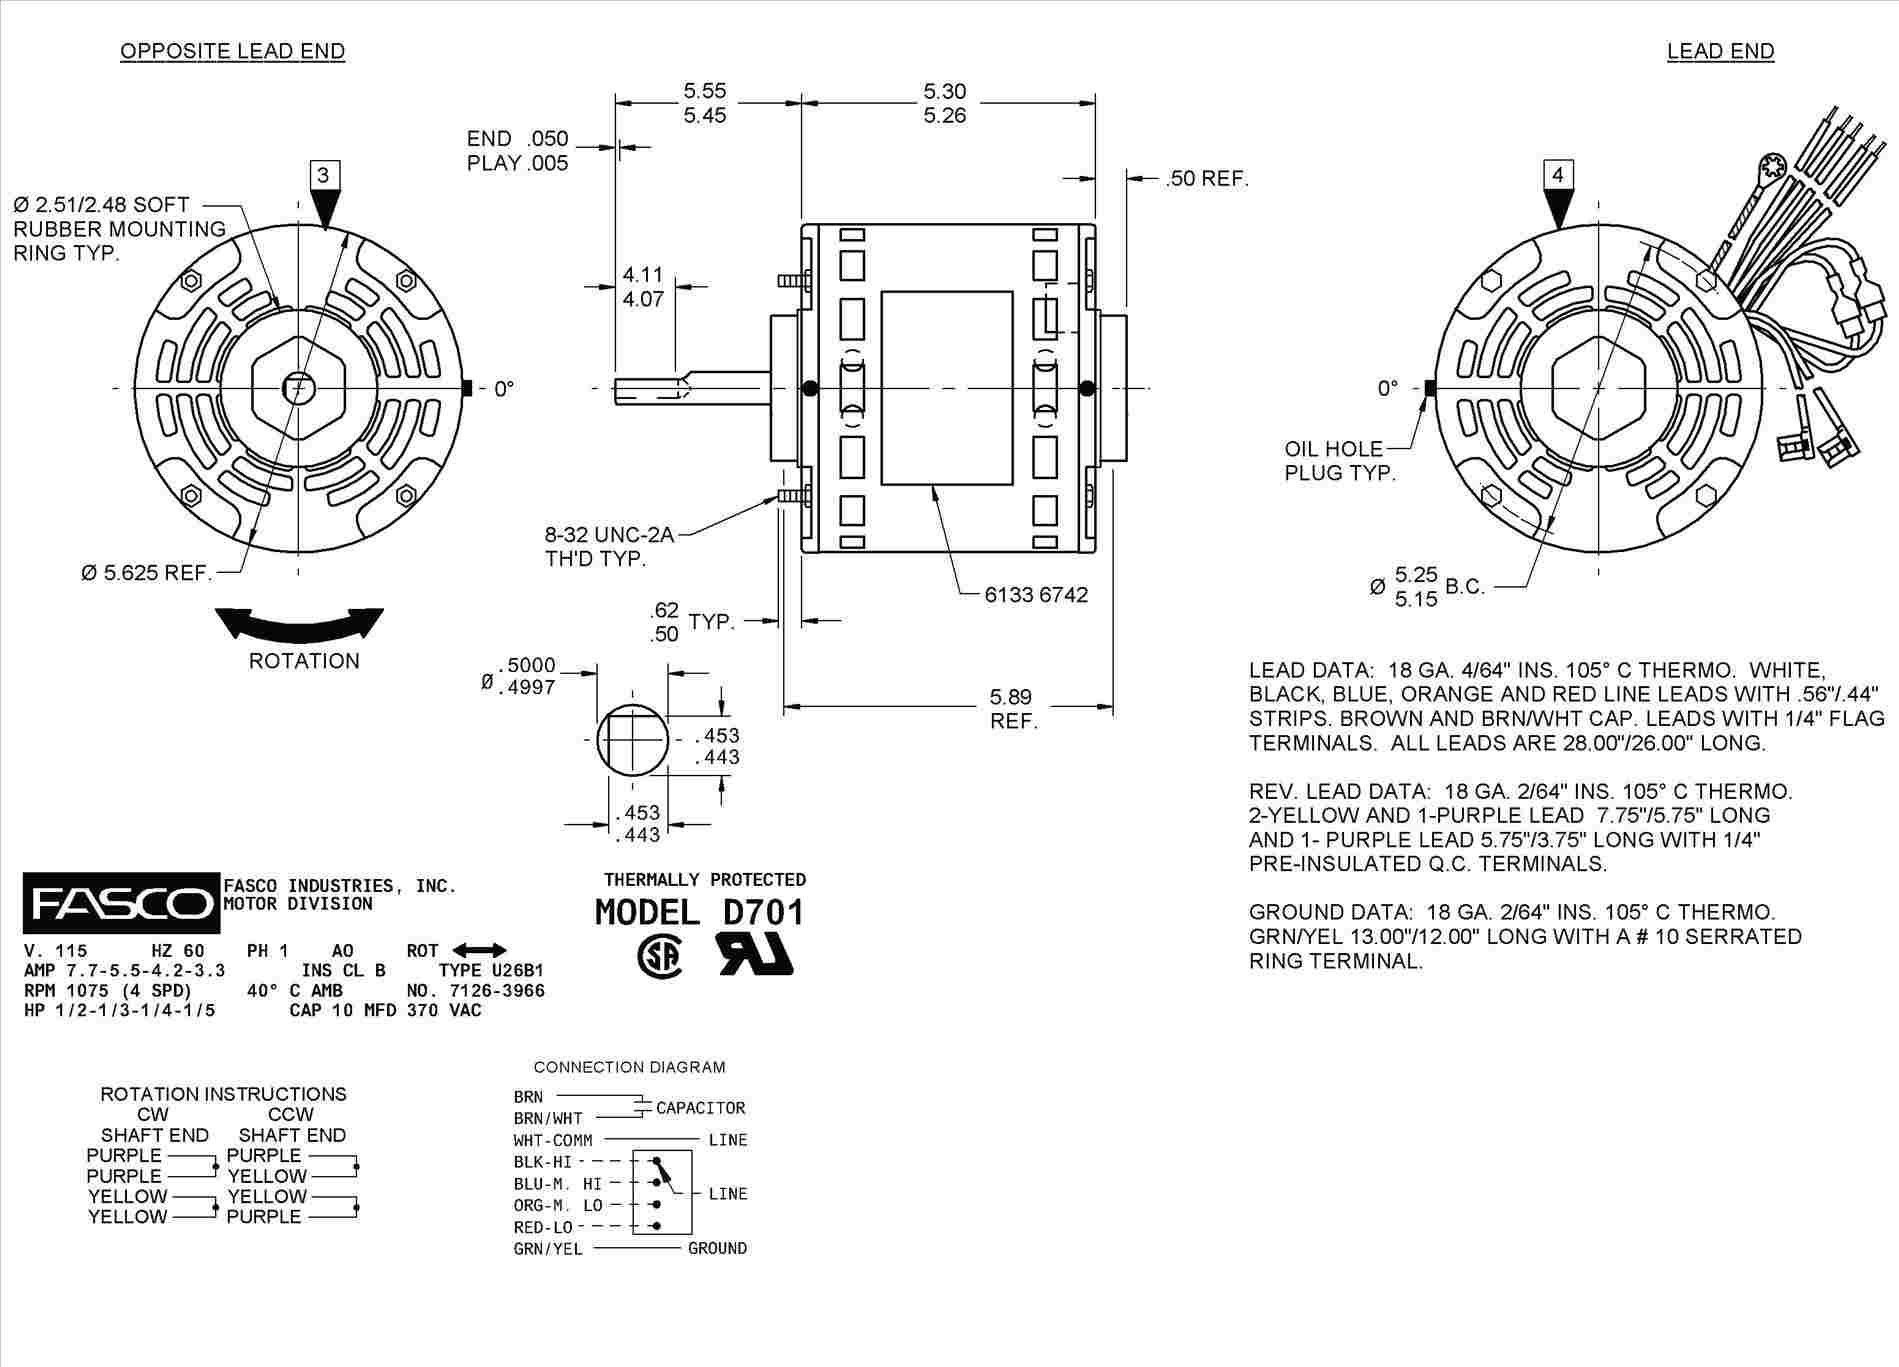 Unique Wiring Diagram Ac Blower Motor (con imágenes) Motores